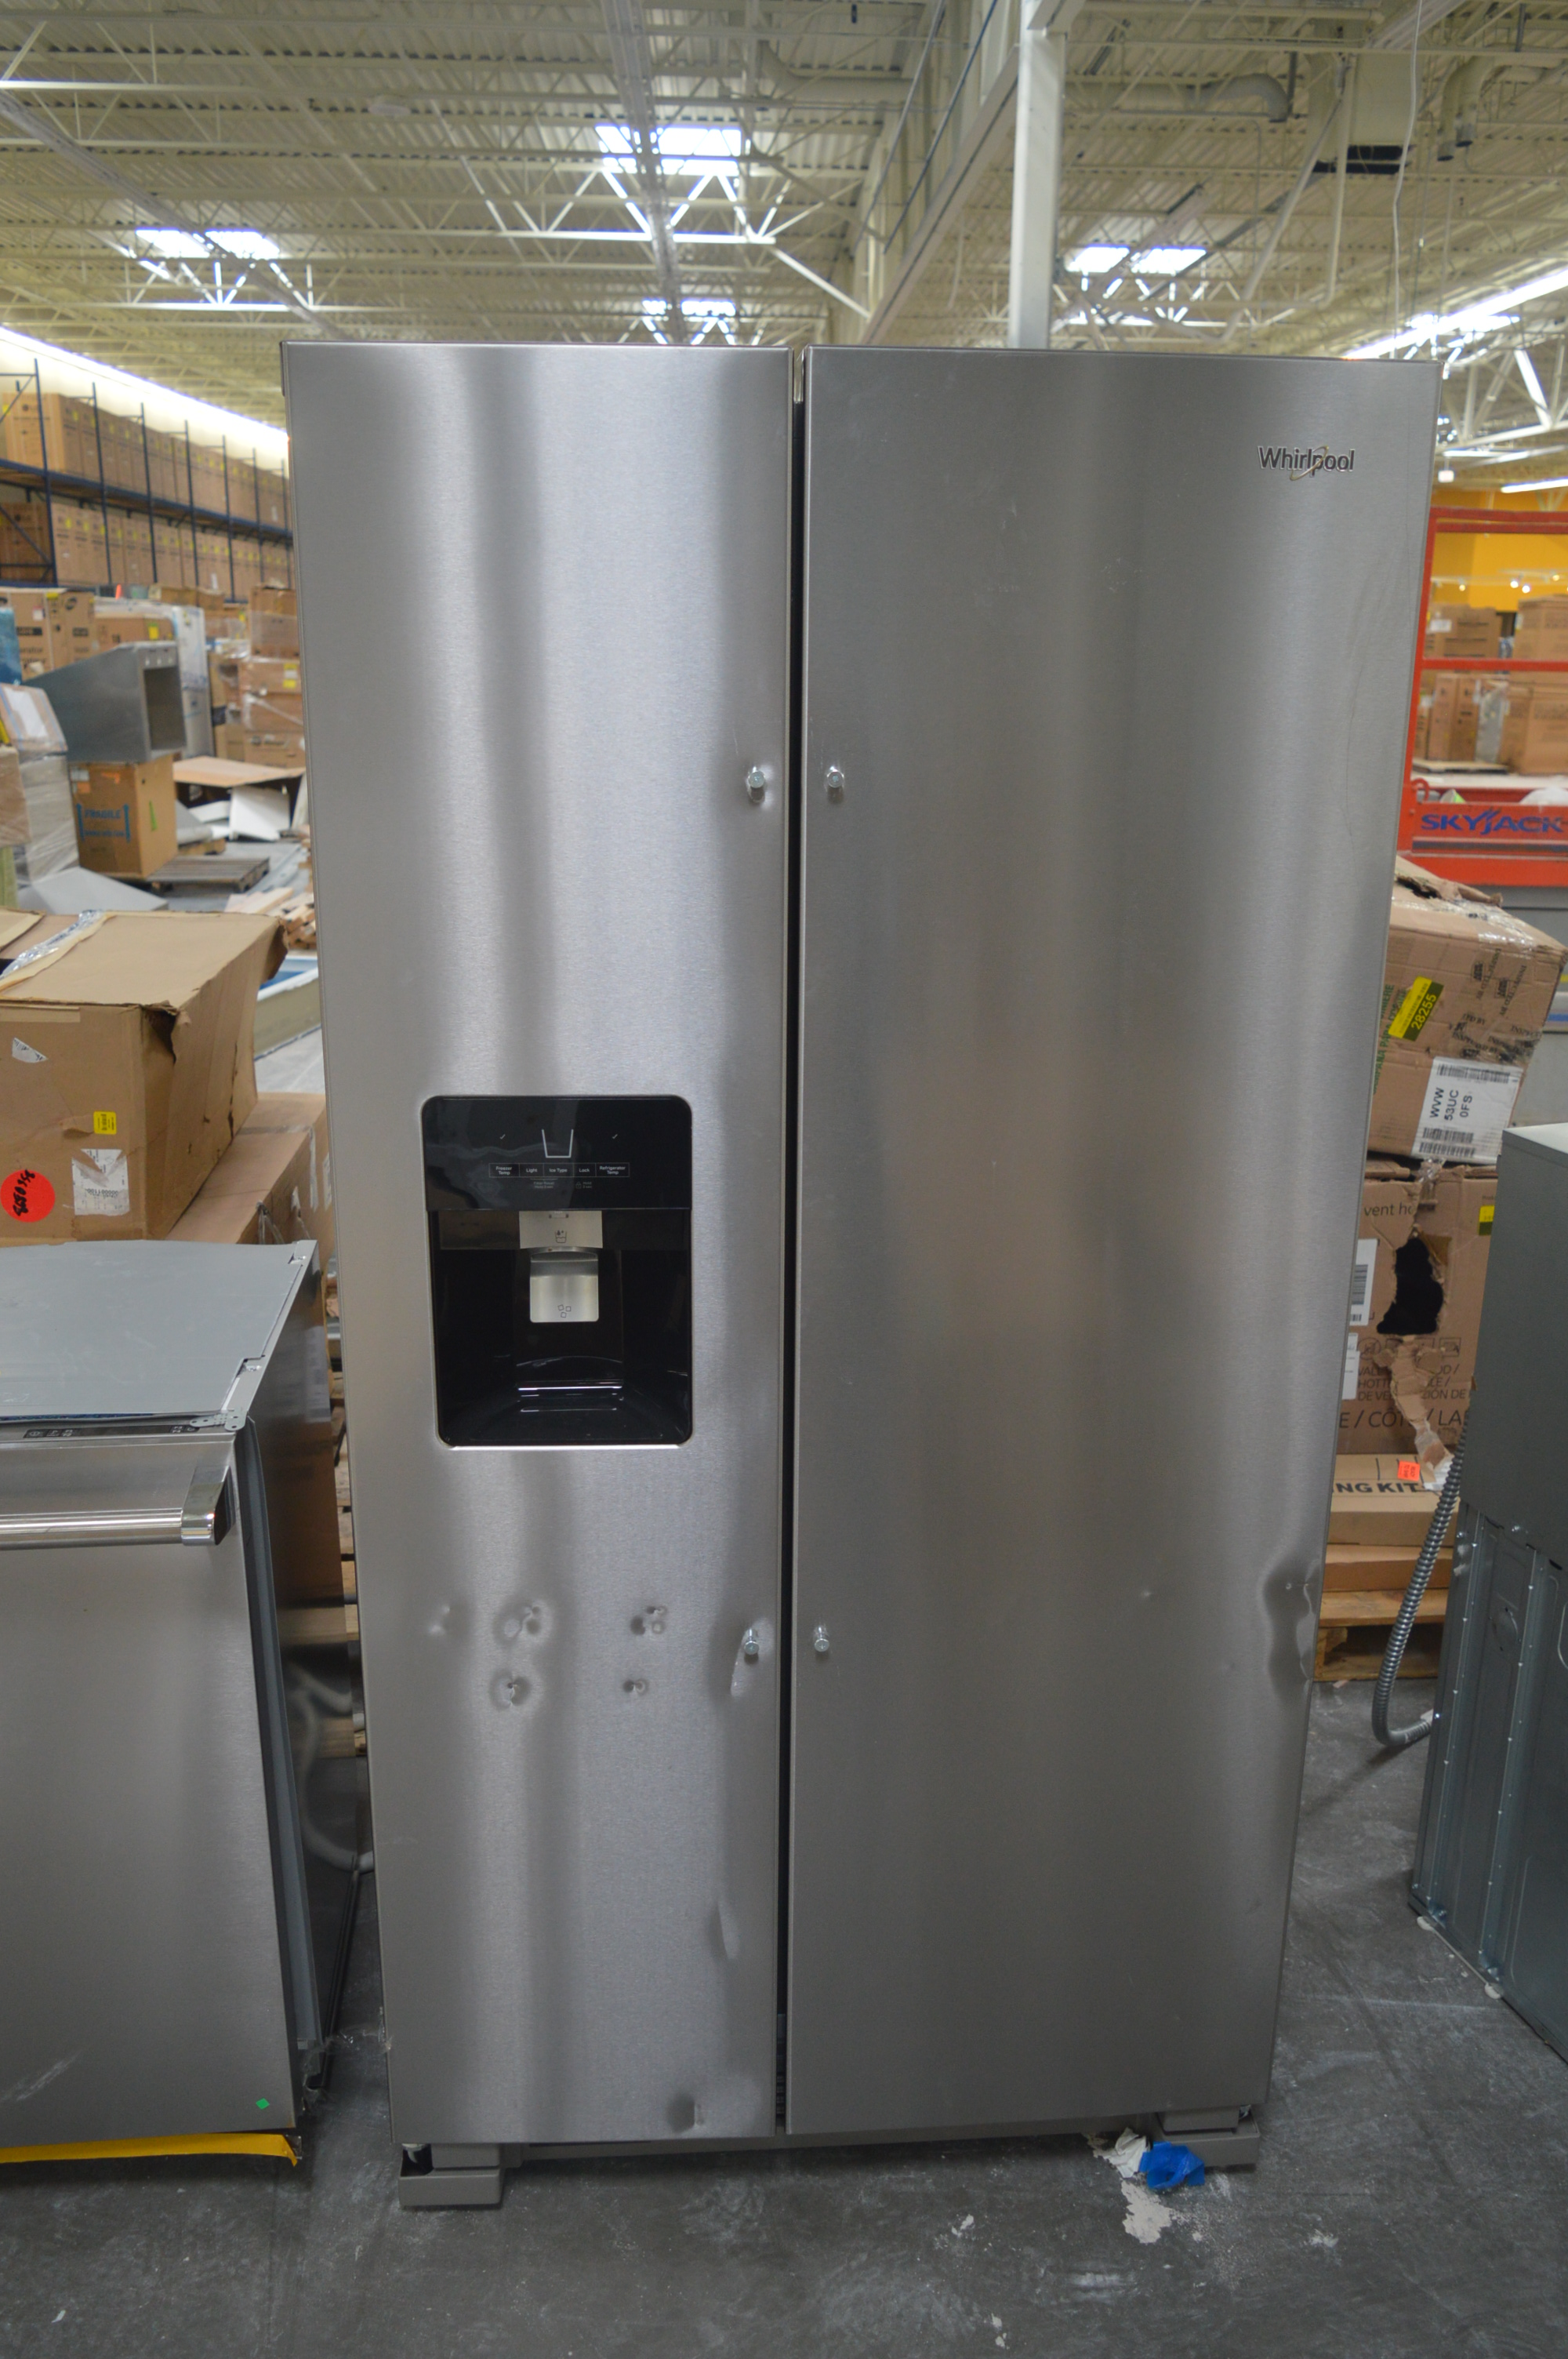 Whirlpool WRS325SDHZ Side By Side Refrigerator Stainless